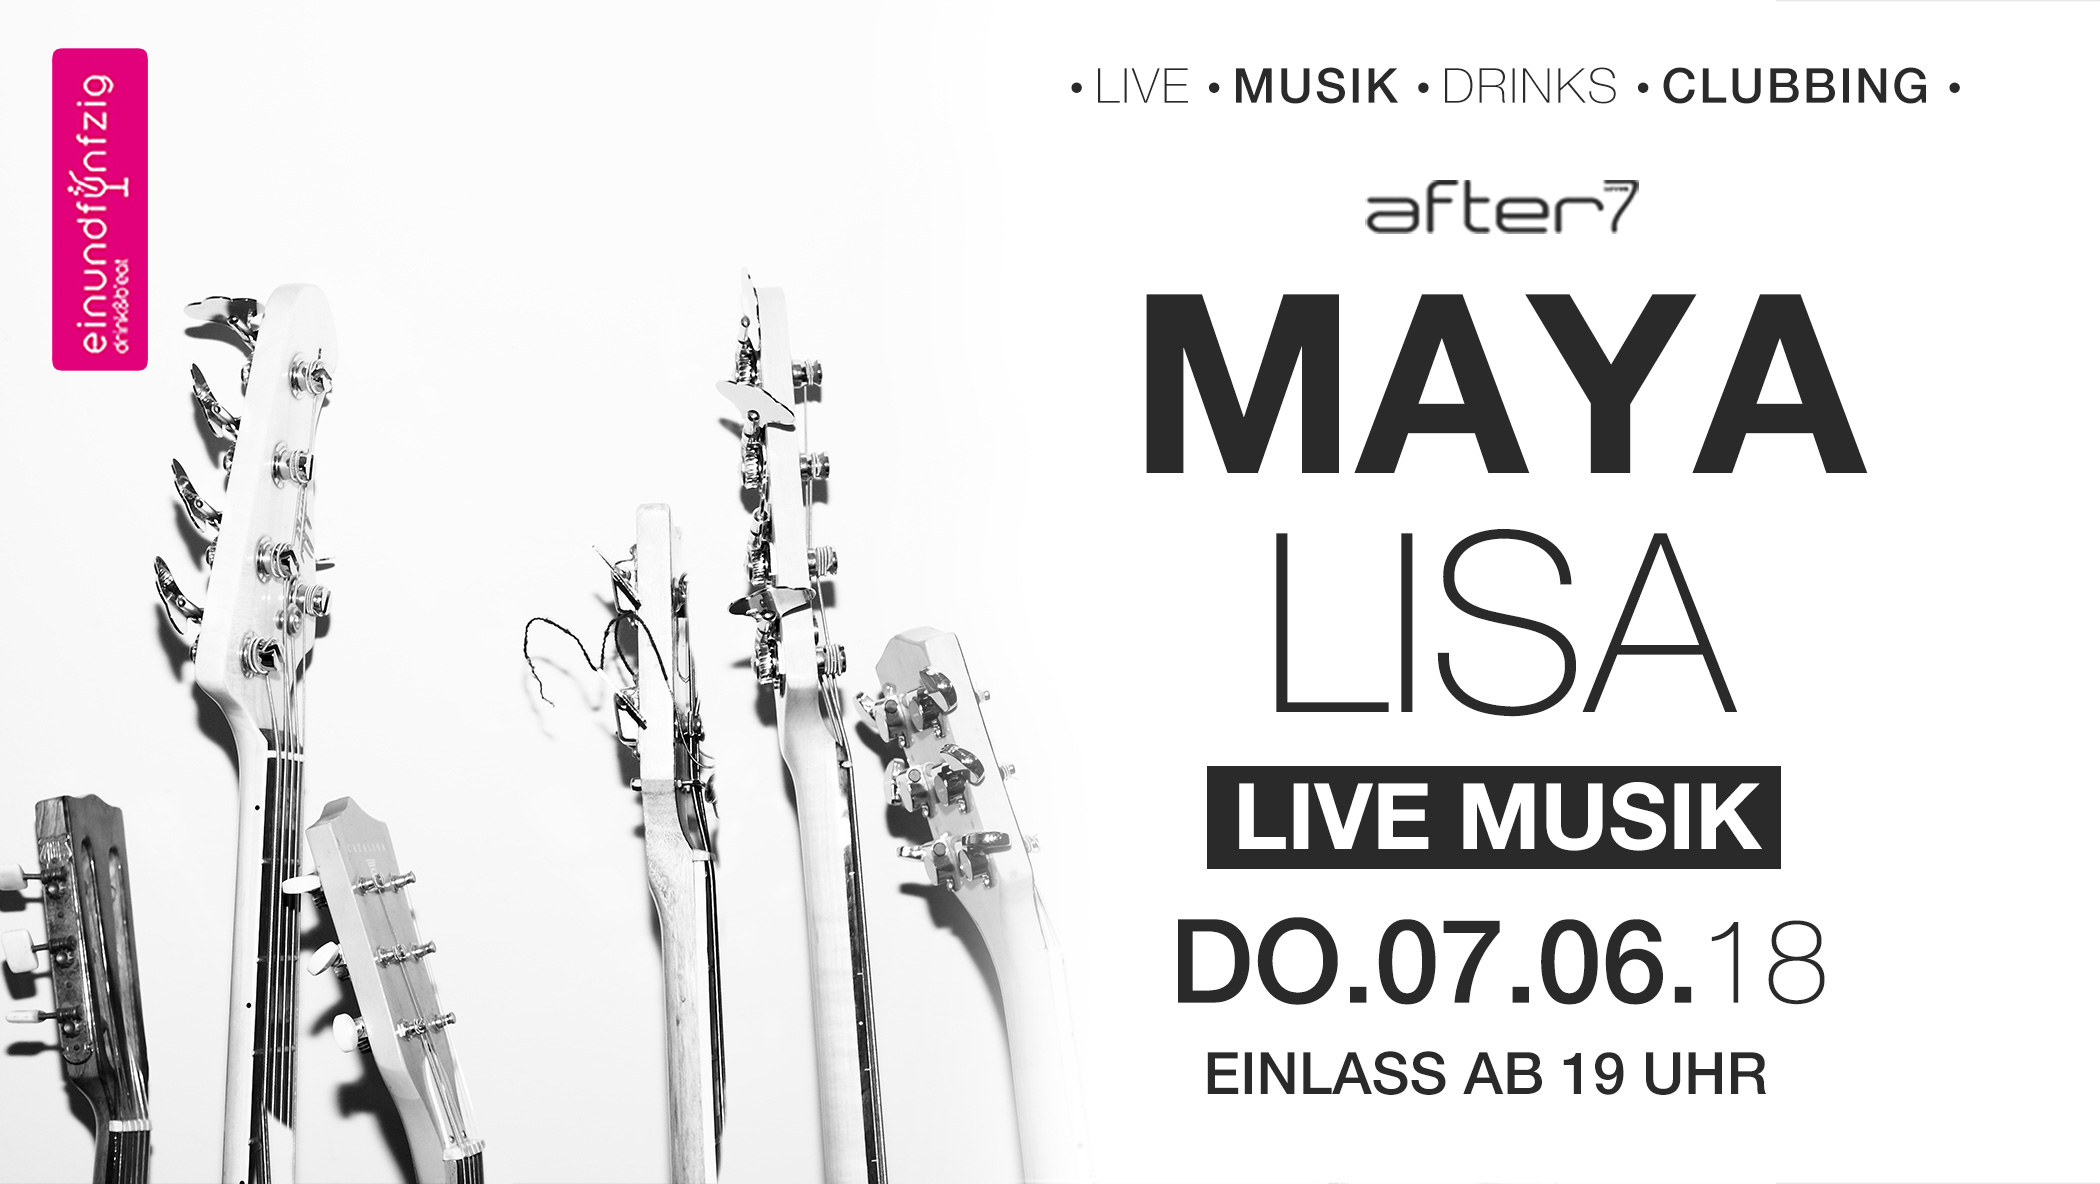 Do. 07.06.2018 MAYA LISA NACHT @After7